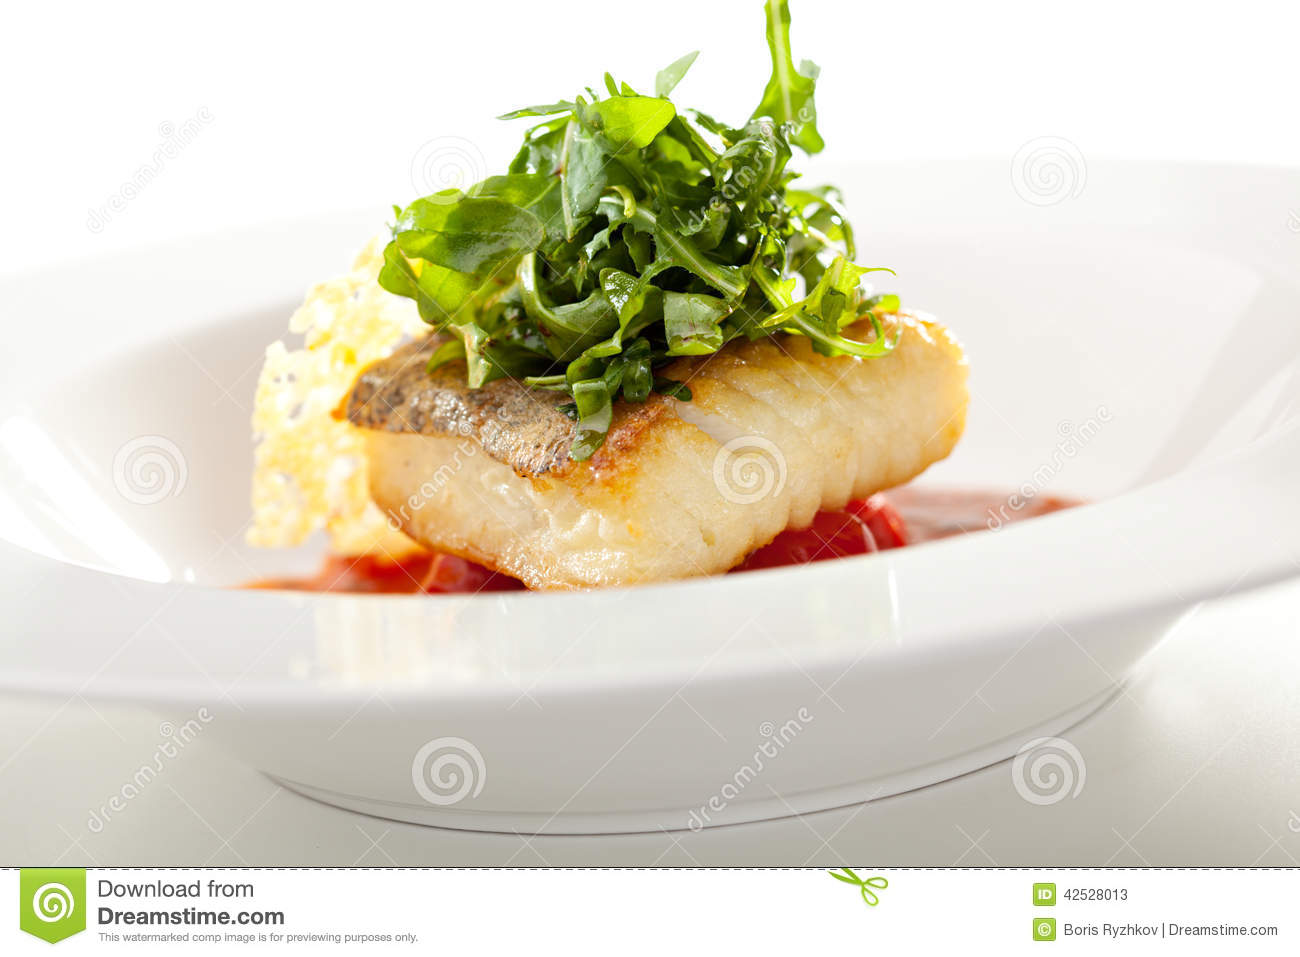 how to cook halibut fillet